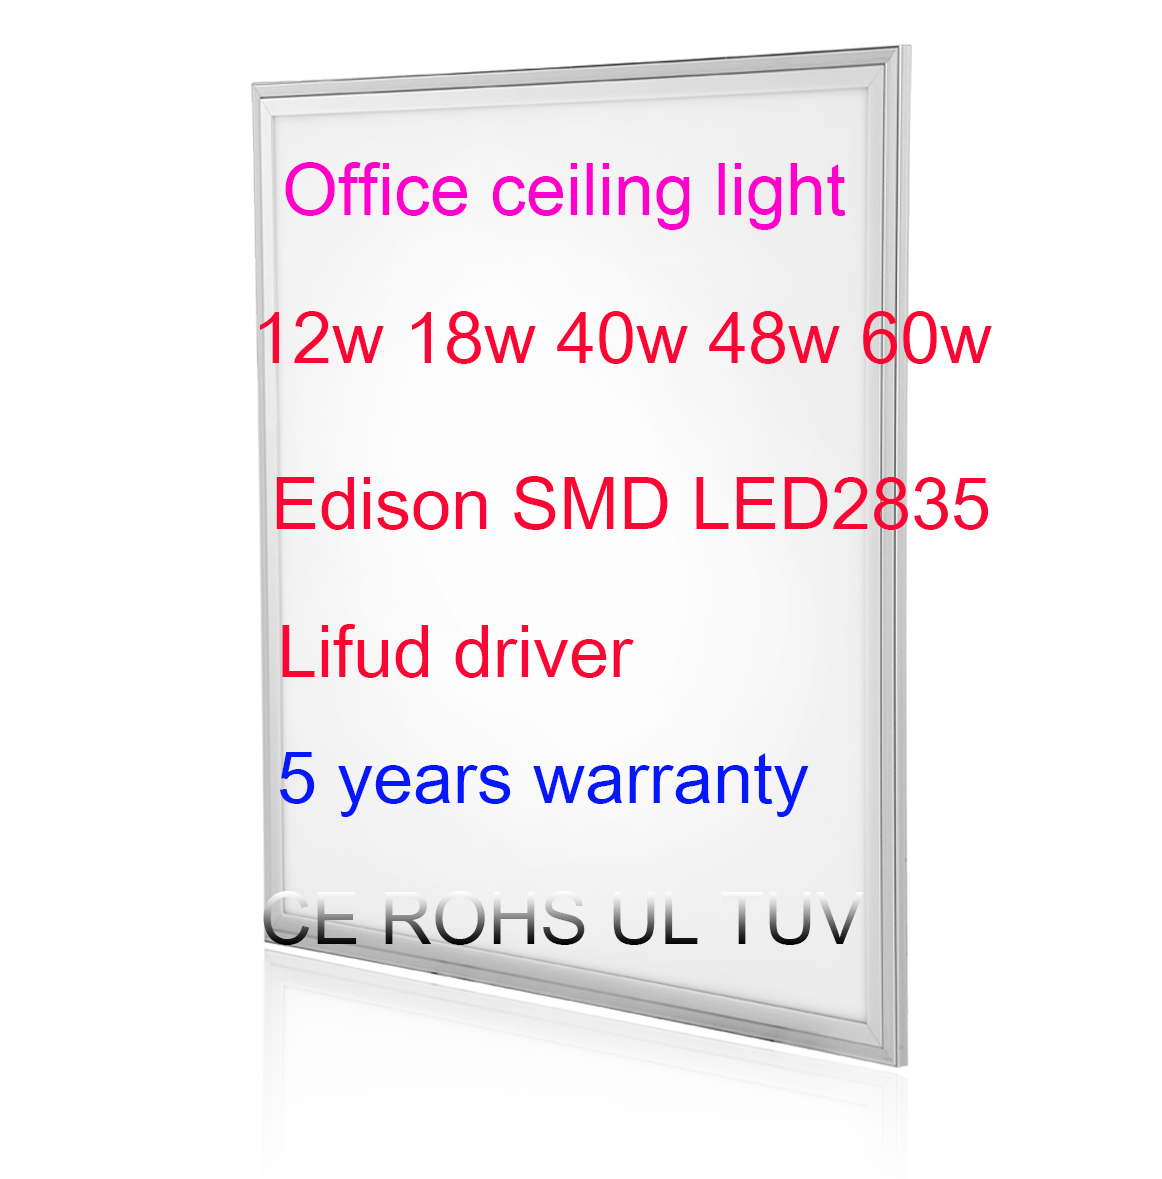 Ceiling panel office light 5 years warranty CE ROHS TUV UL ceitificated with cheap price